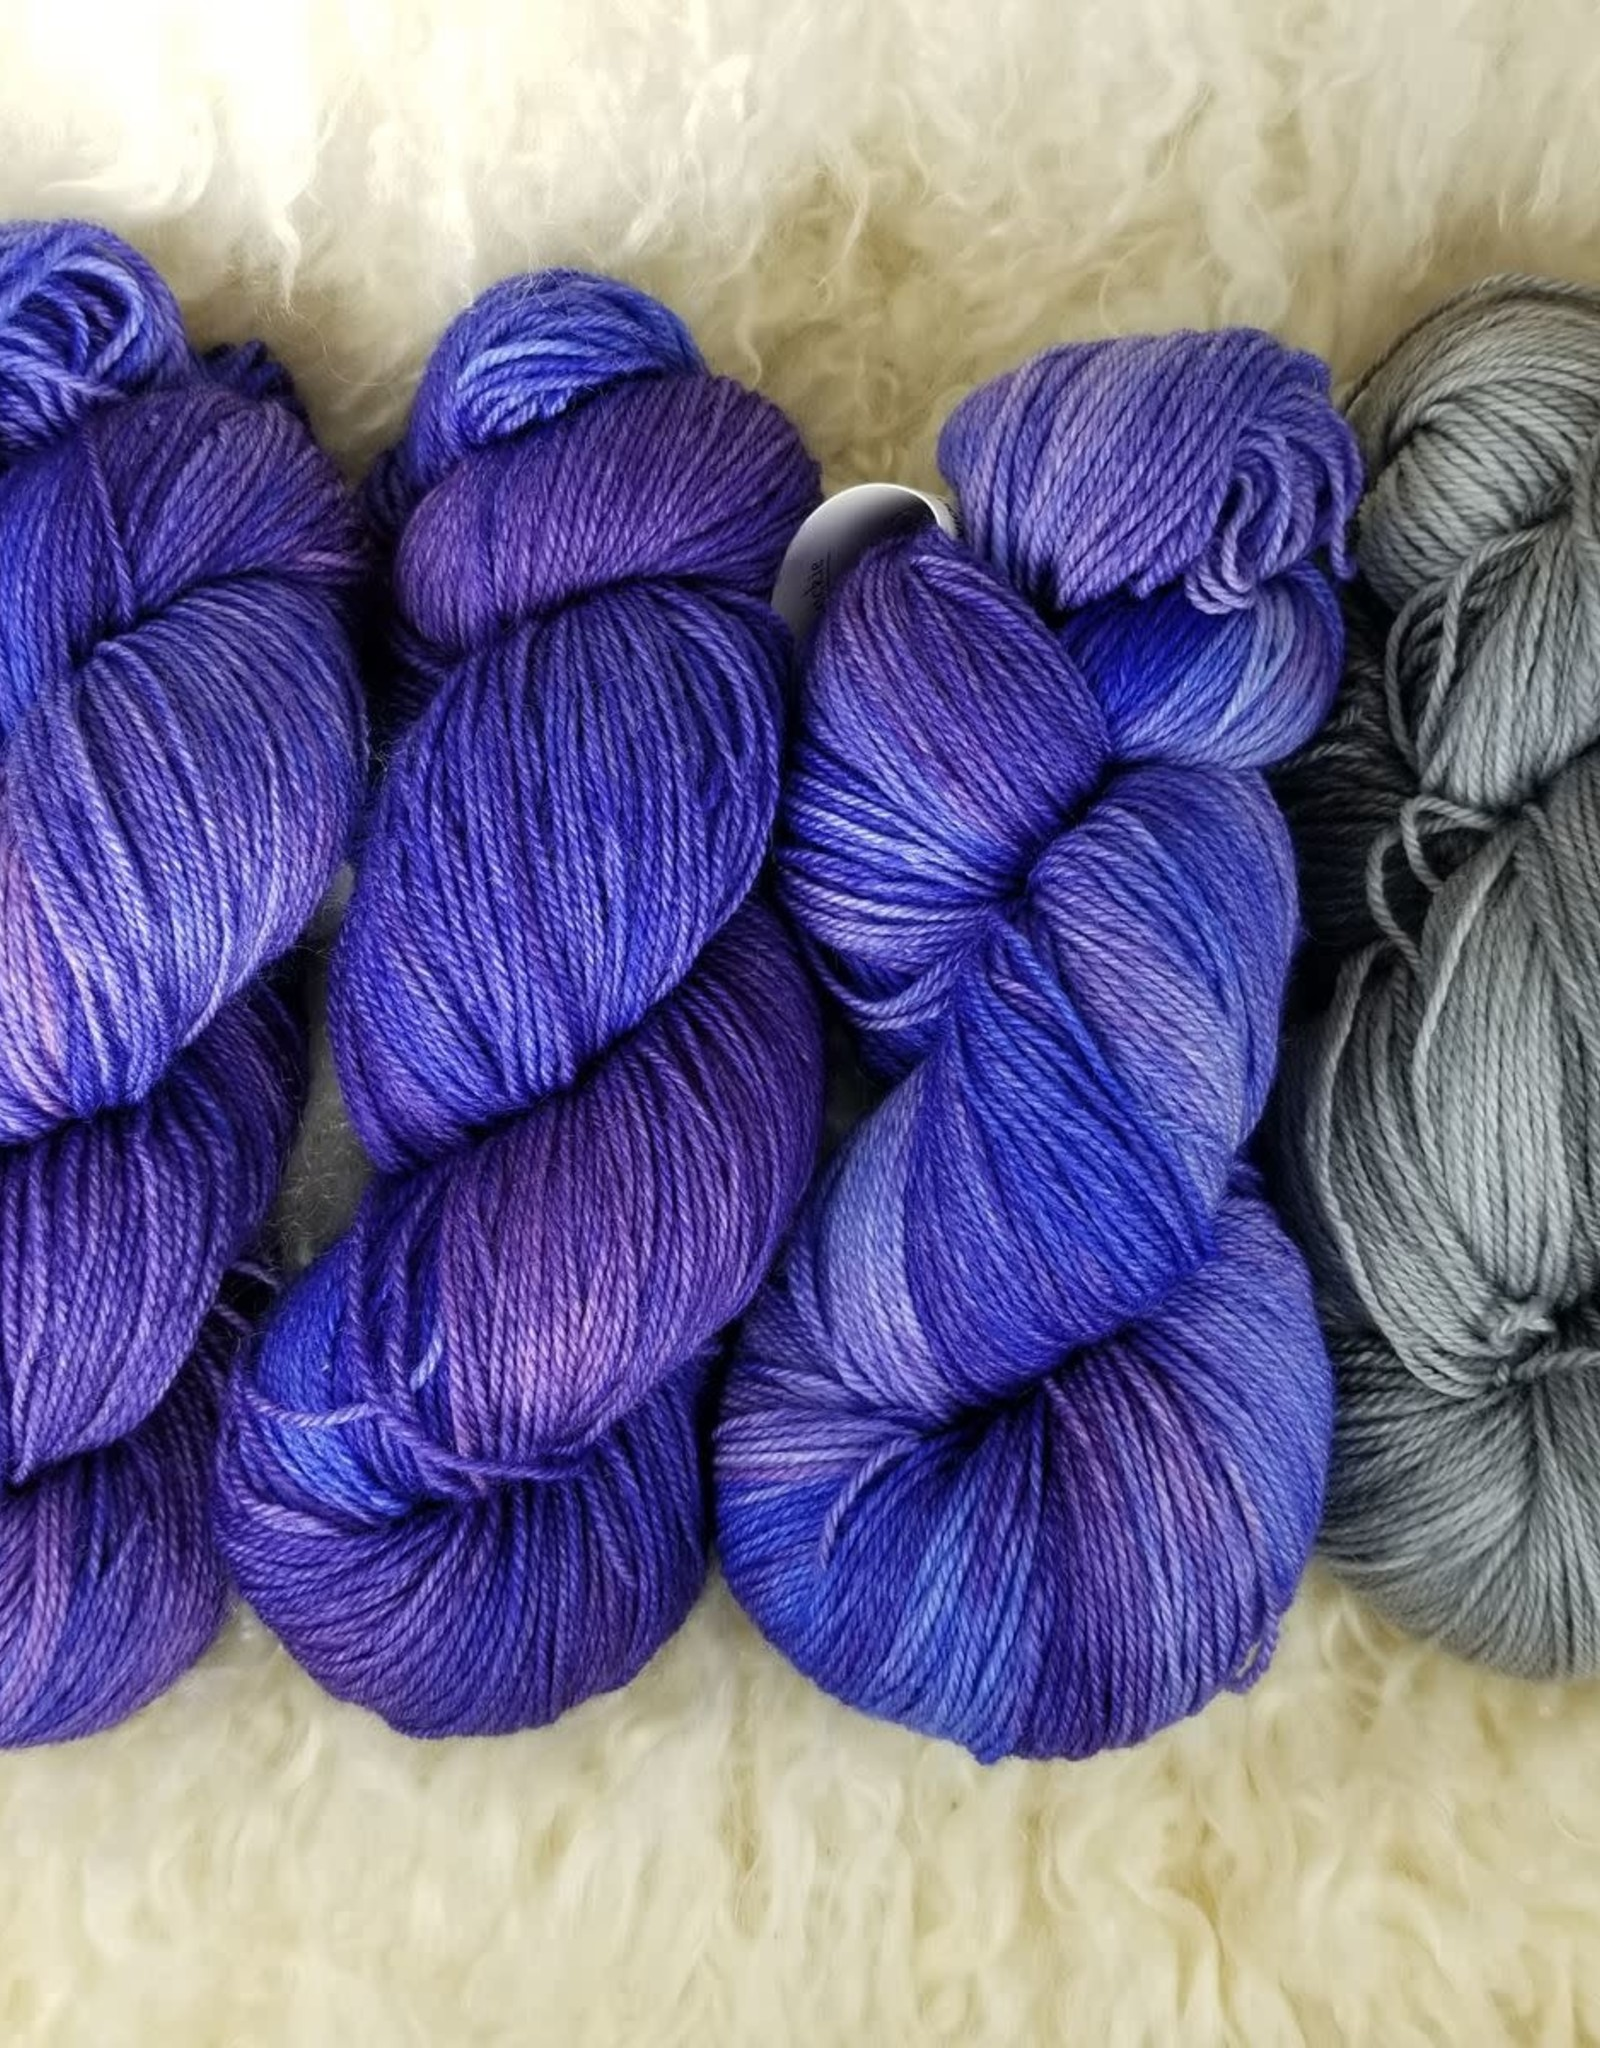 "Palouse Yarn Co KIT Darkwater Pullover UltraViolet 3+1 skein, fit to sz 40.75"" bust"